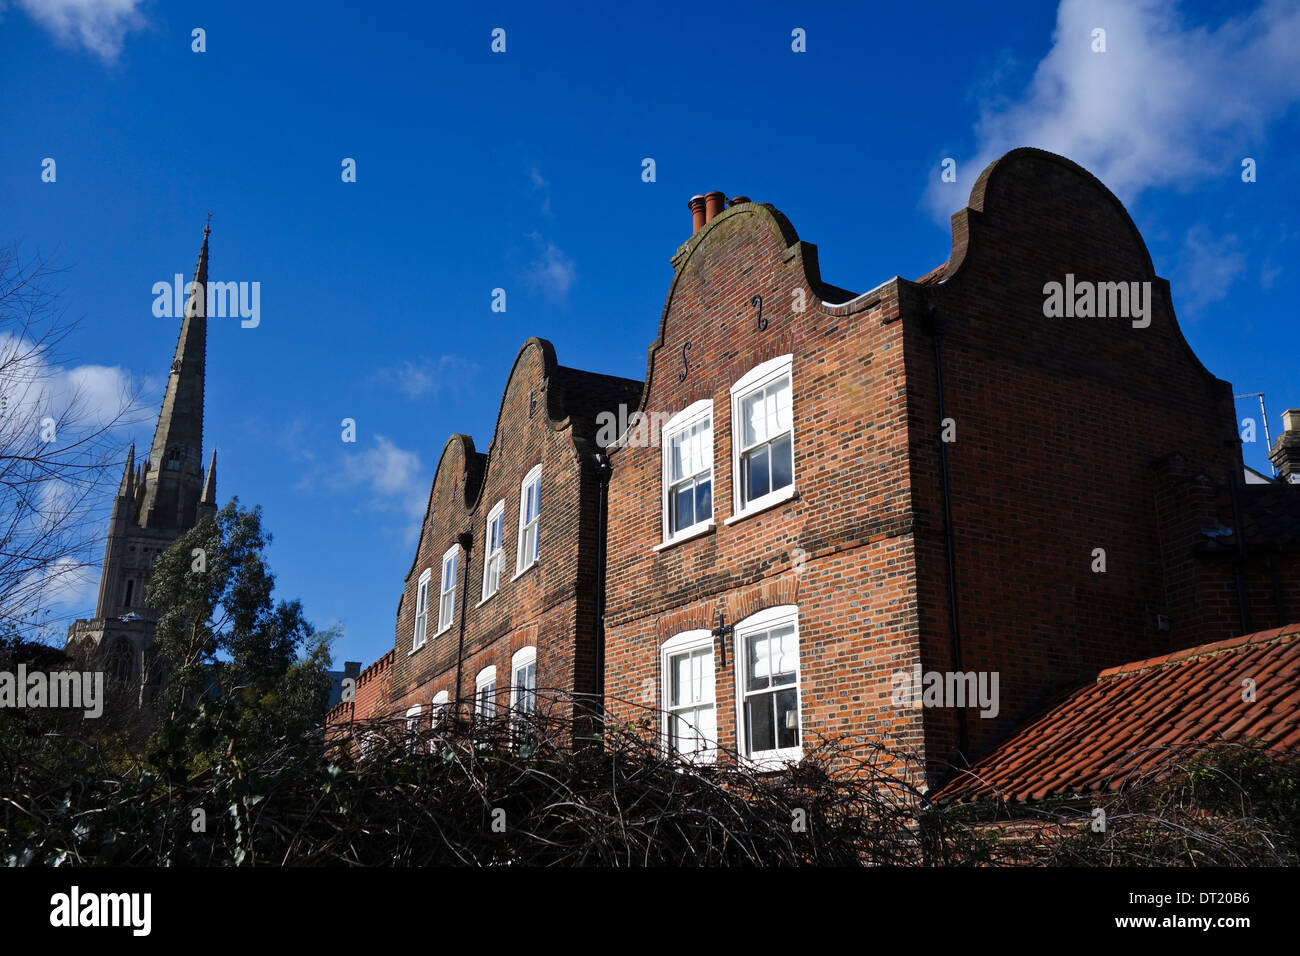 Dutch gable on house in Norwich - Stock Image